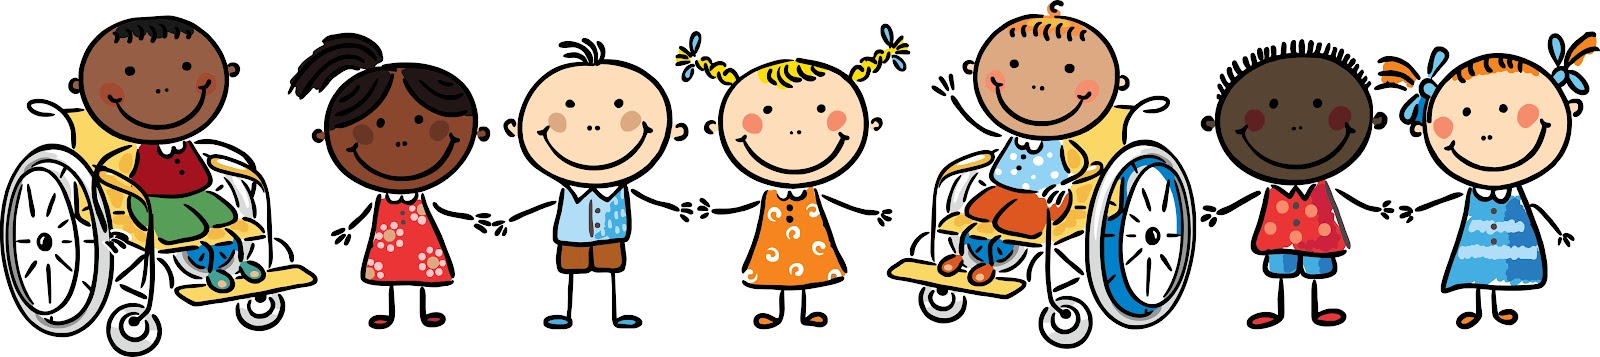 CARTOON IMAGE OF CHILDREN IN A ROW